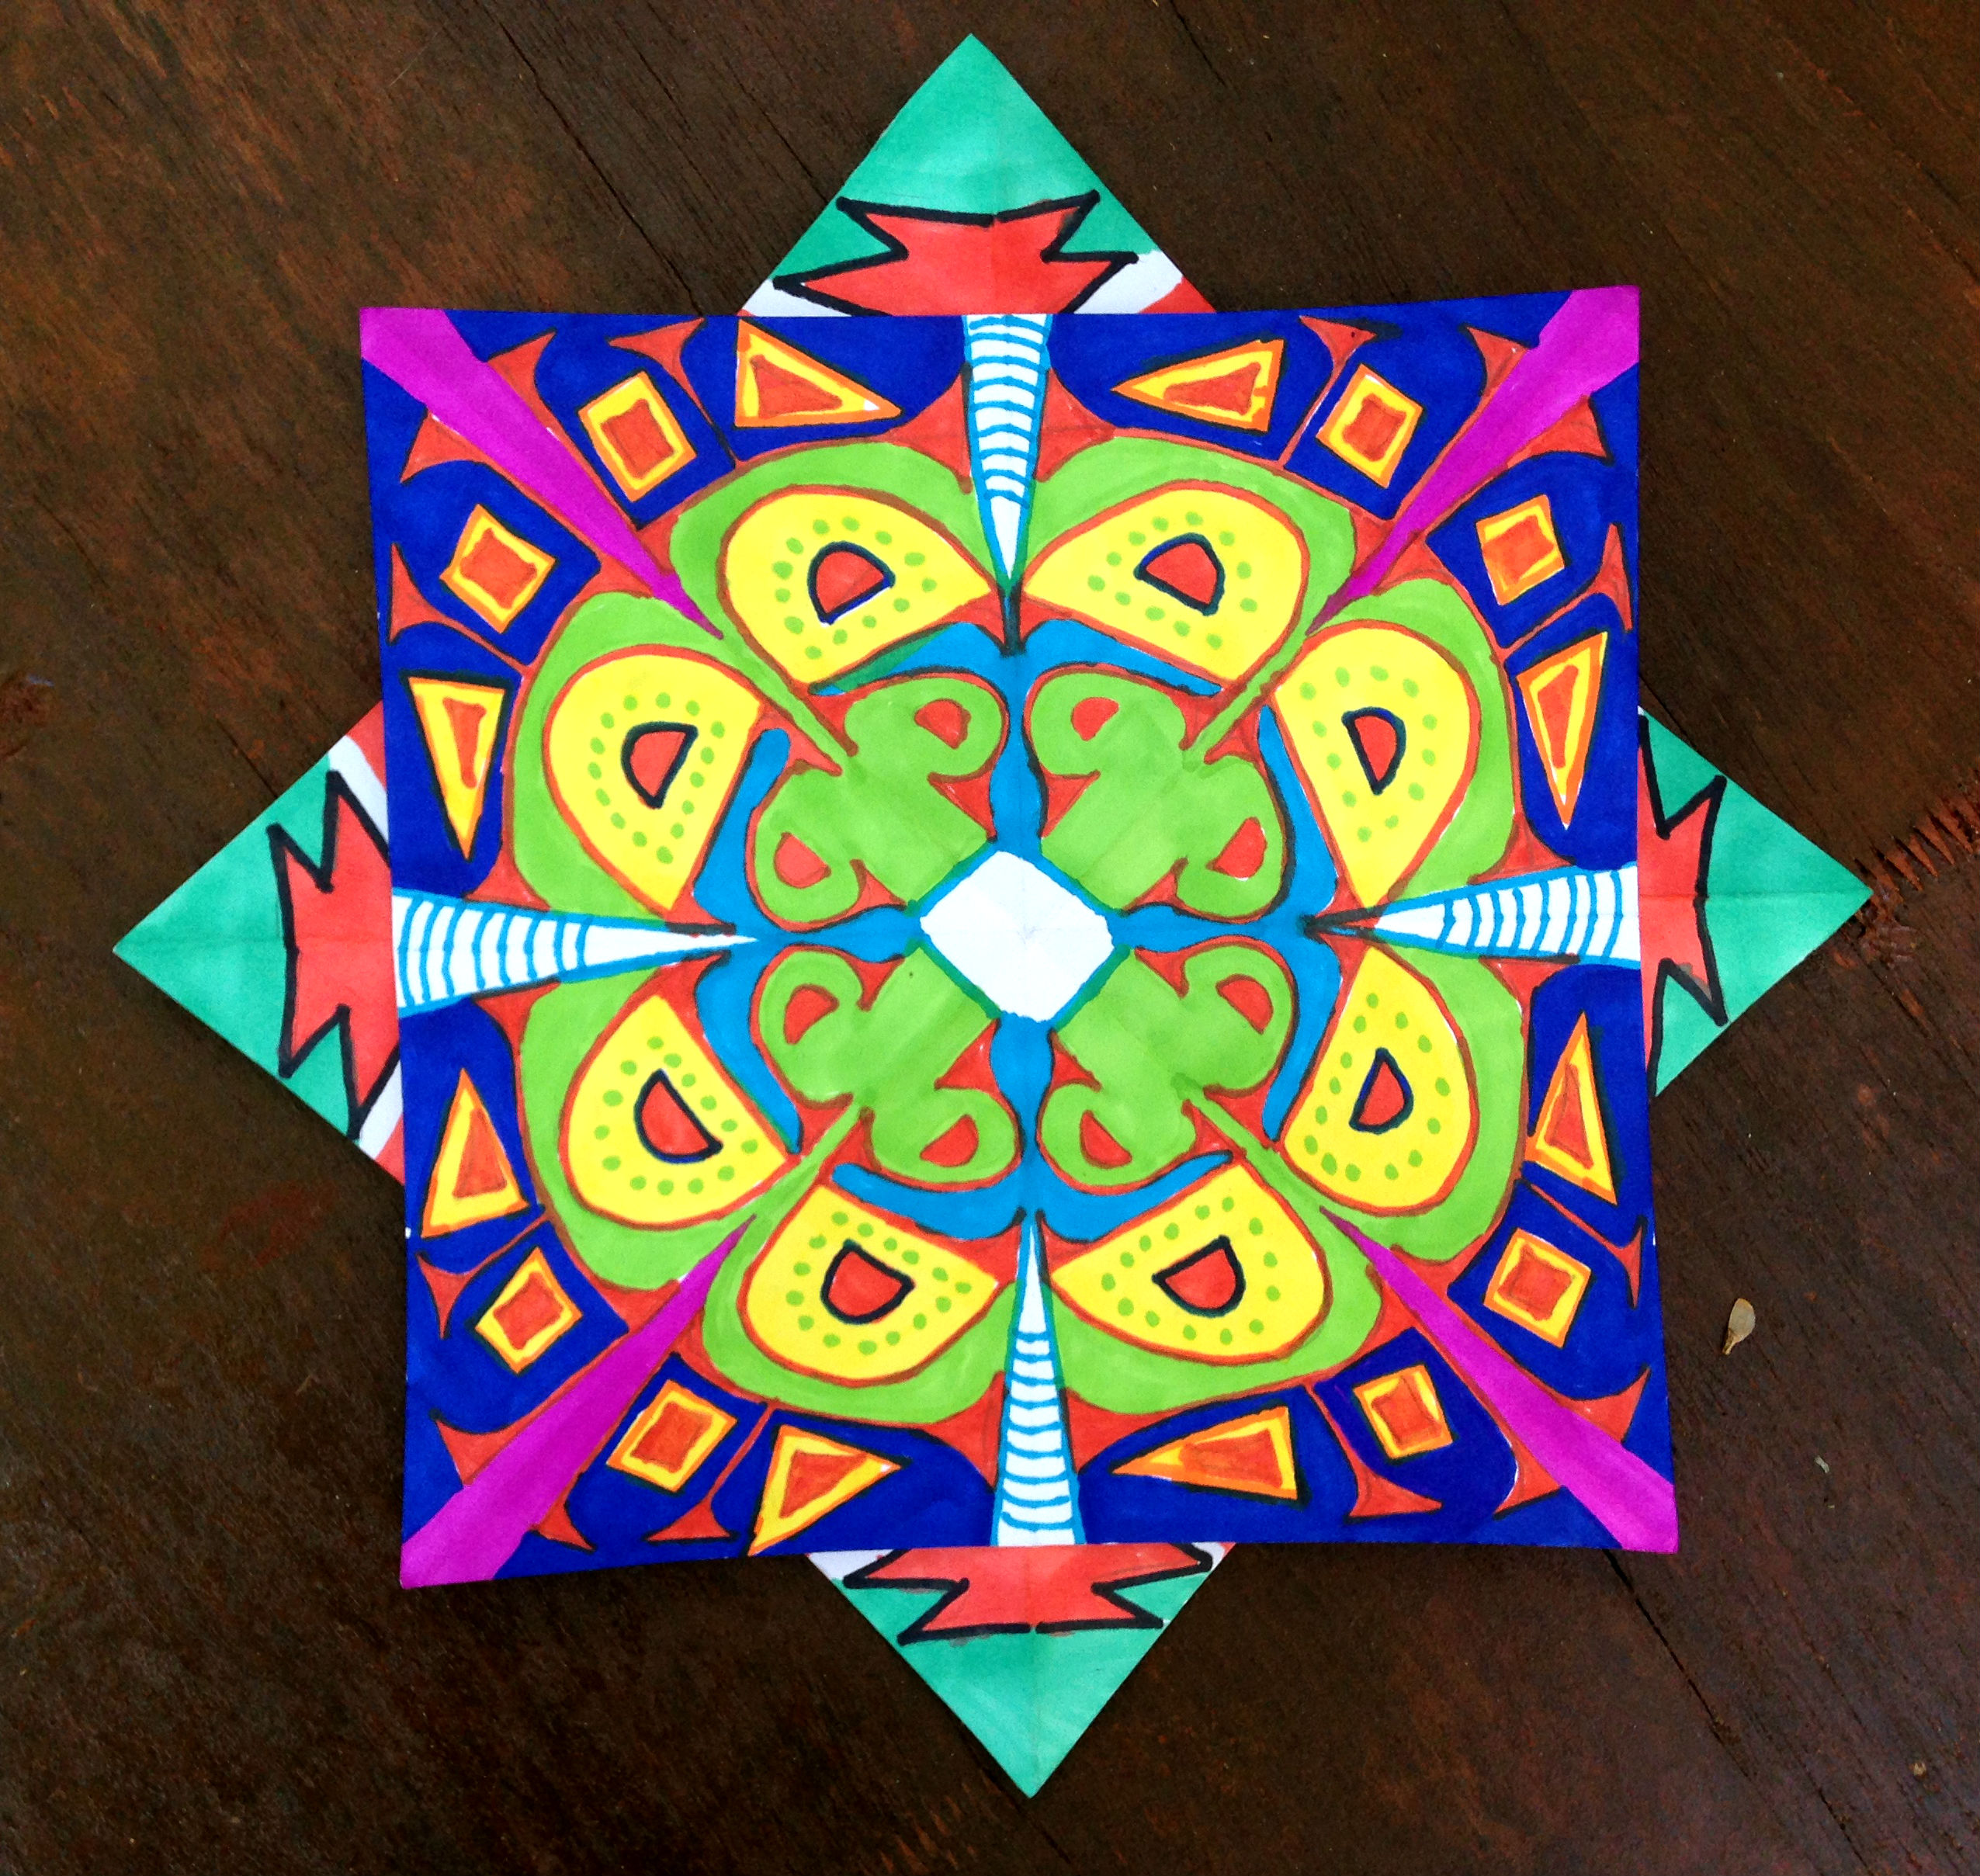 Kaleidoscope Star 1